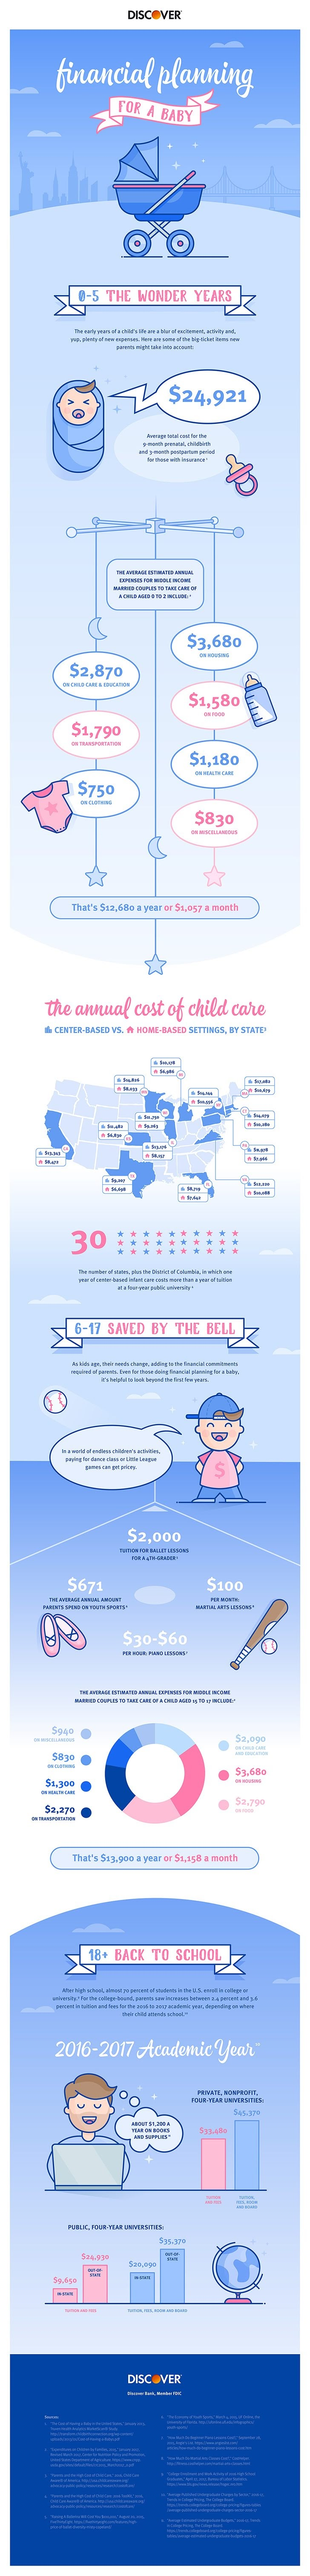 Financial Planning for a Baby: The Costs of Raising a Child #infographic